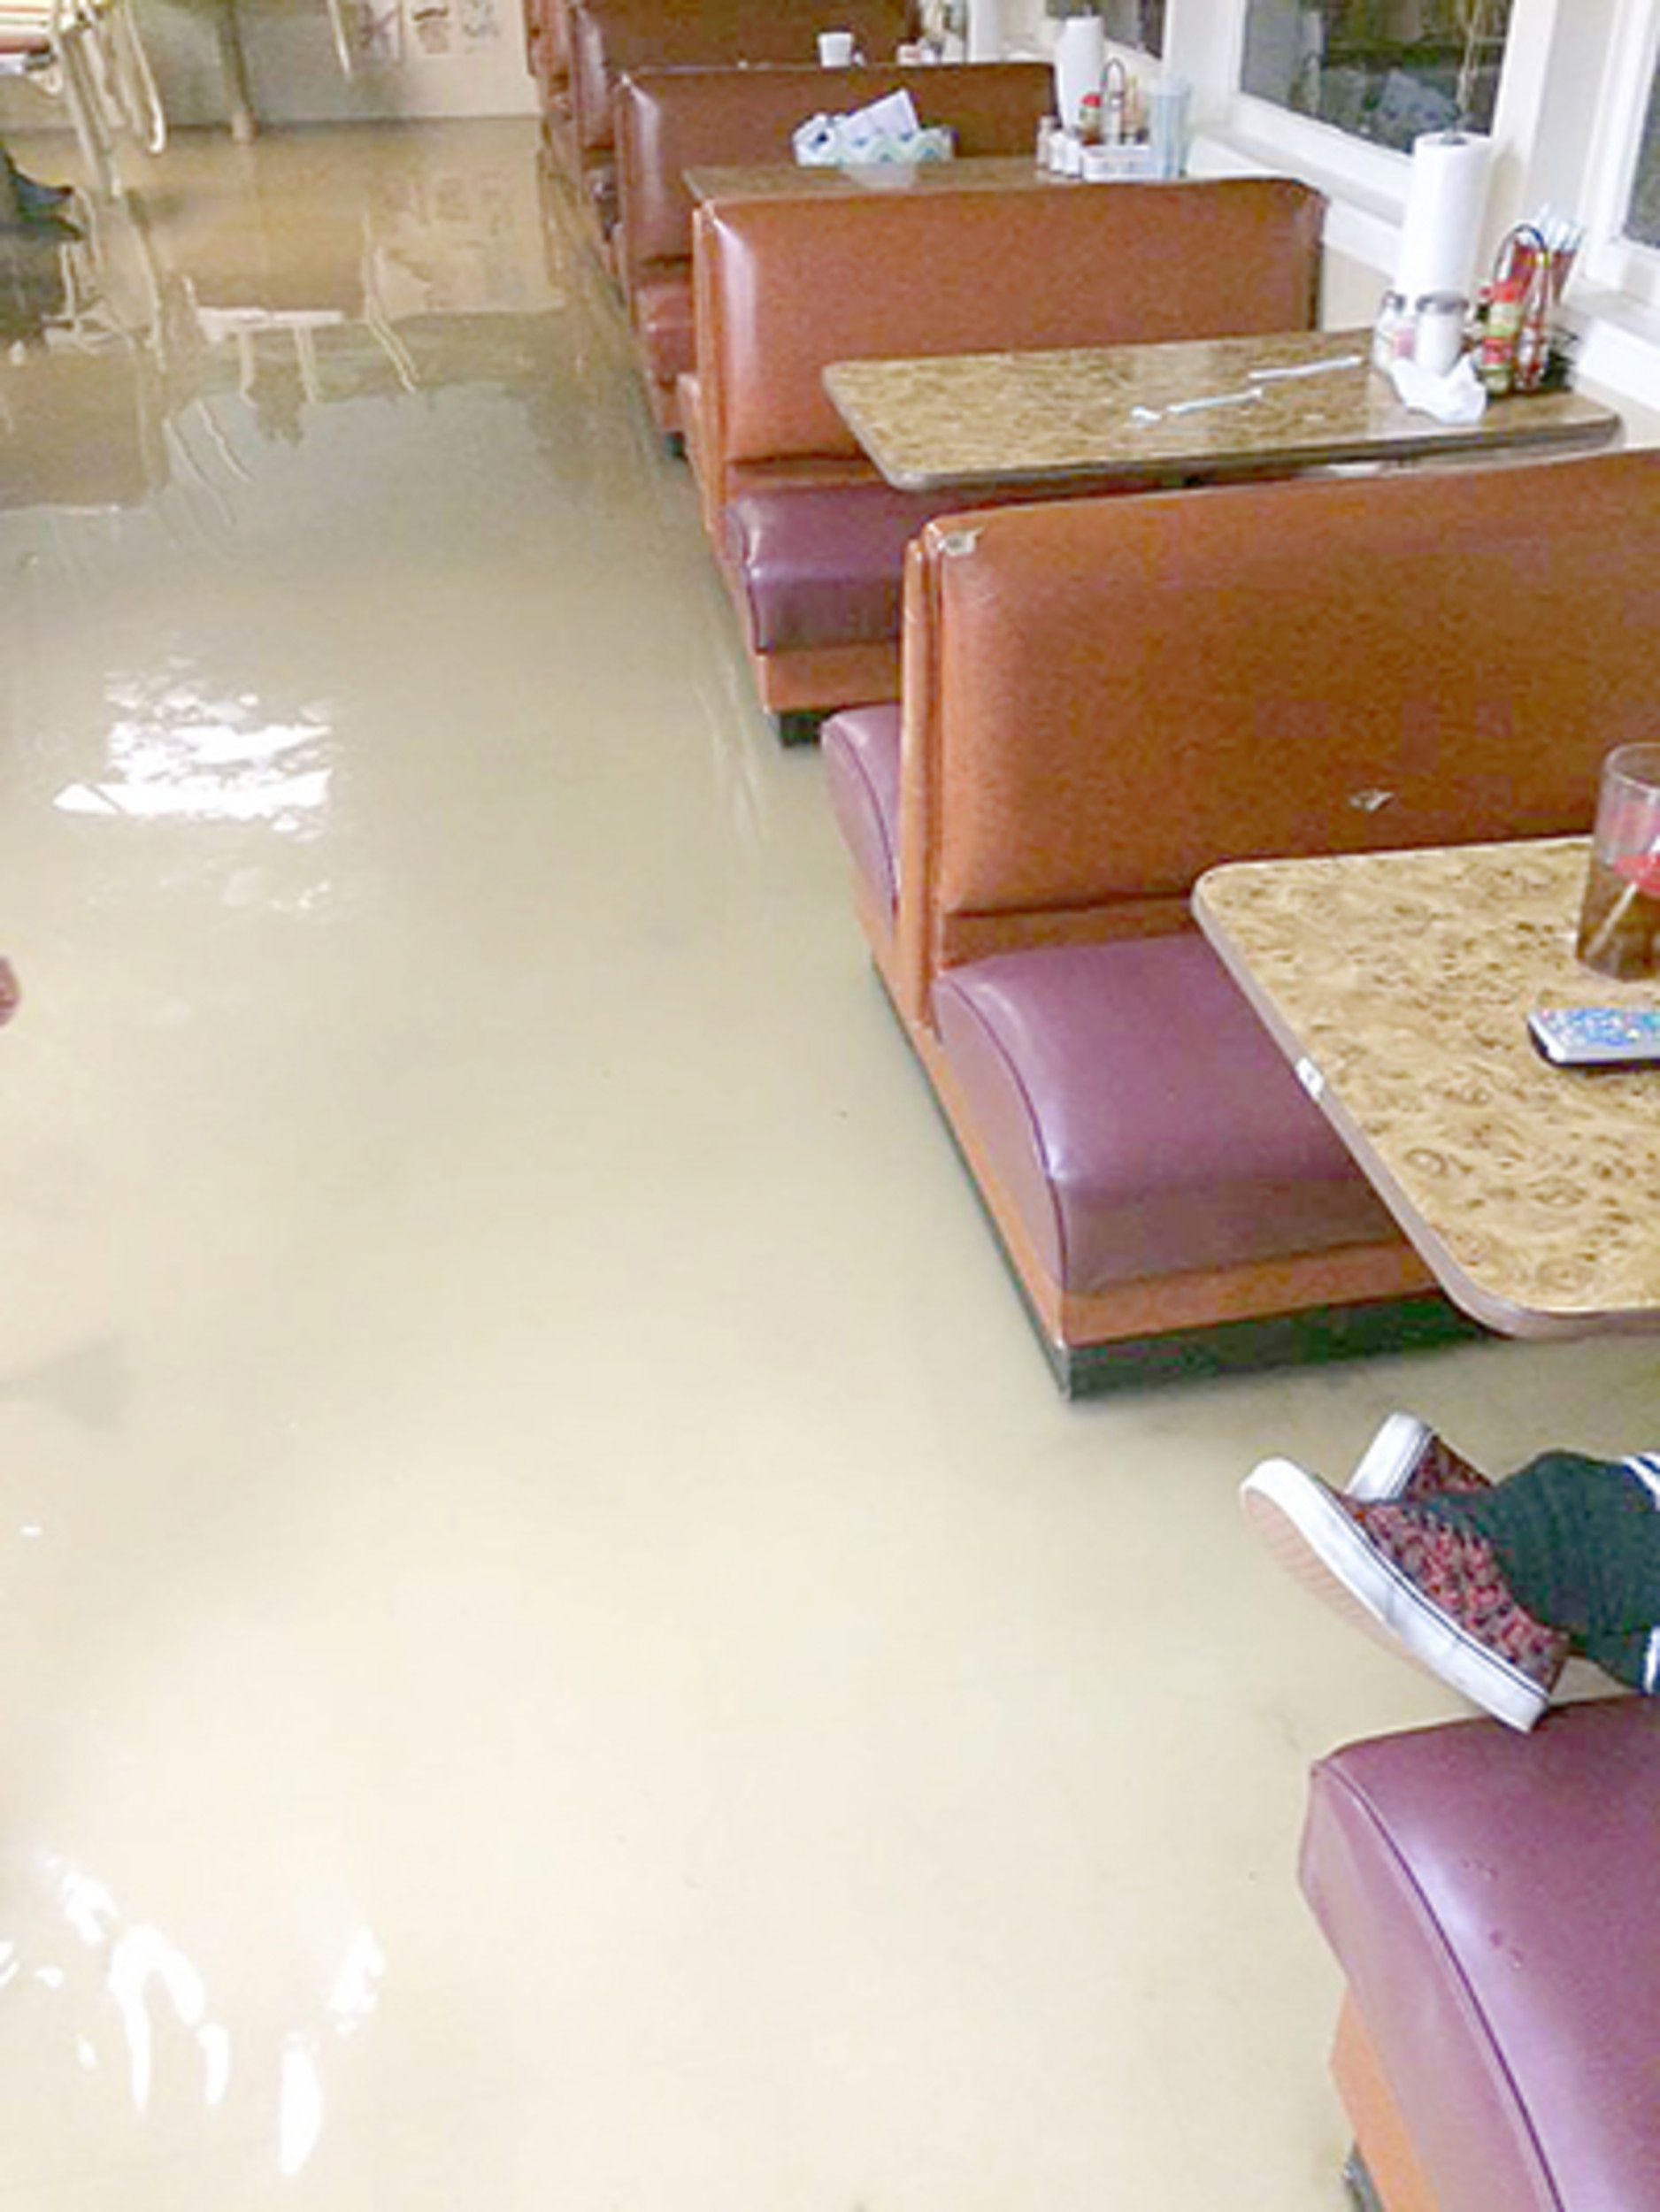 Etonnant Carbon Hill Business Flooded By Heavy Rain On Christmas Day | Daily  Mountain Eagle